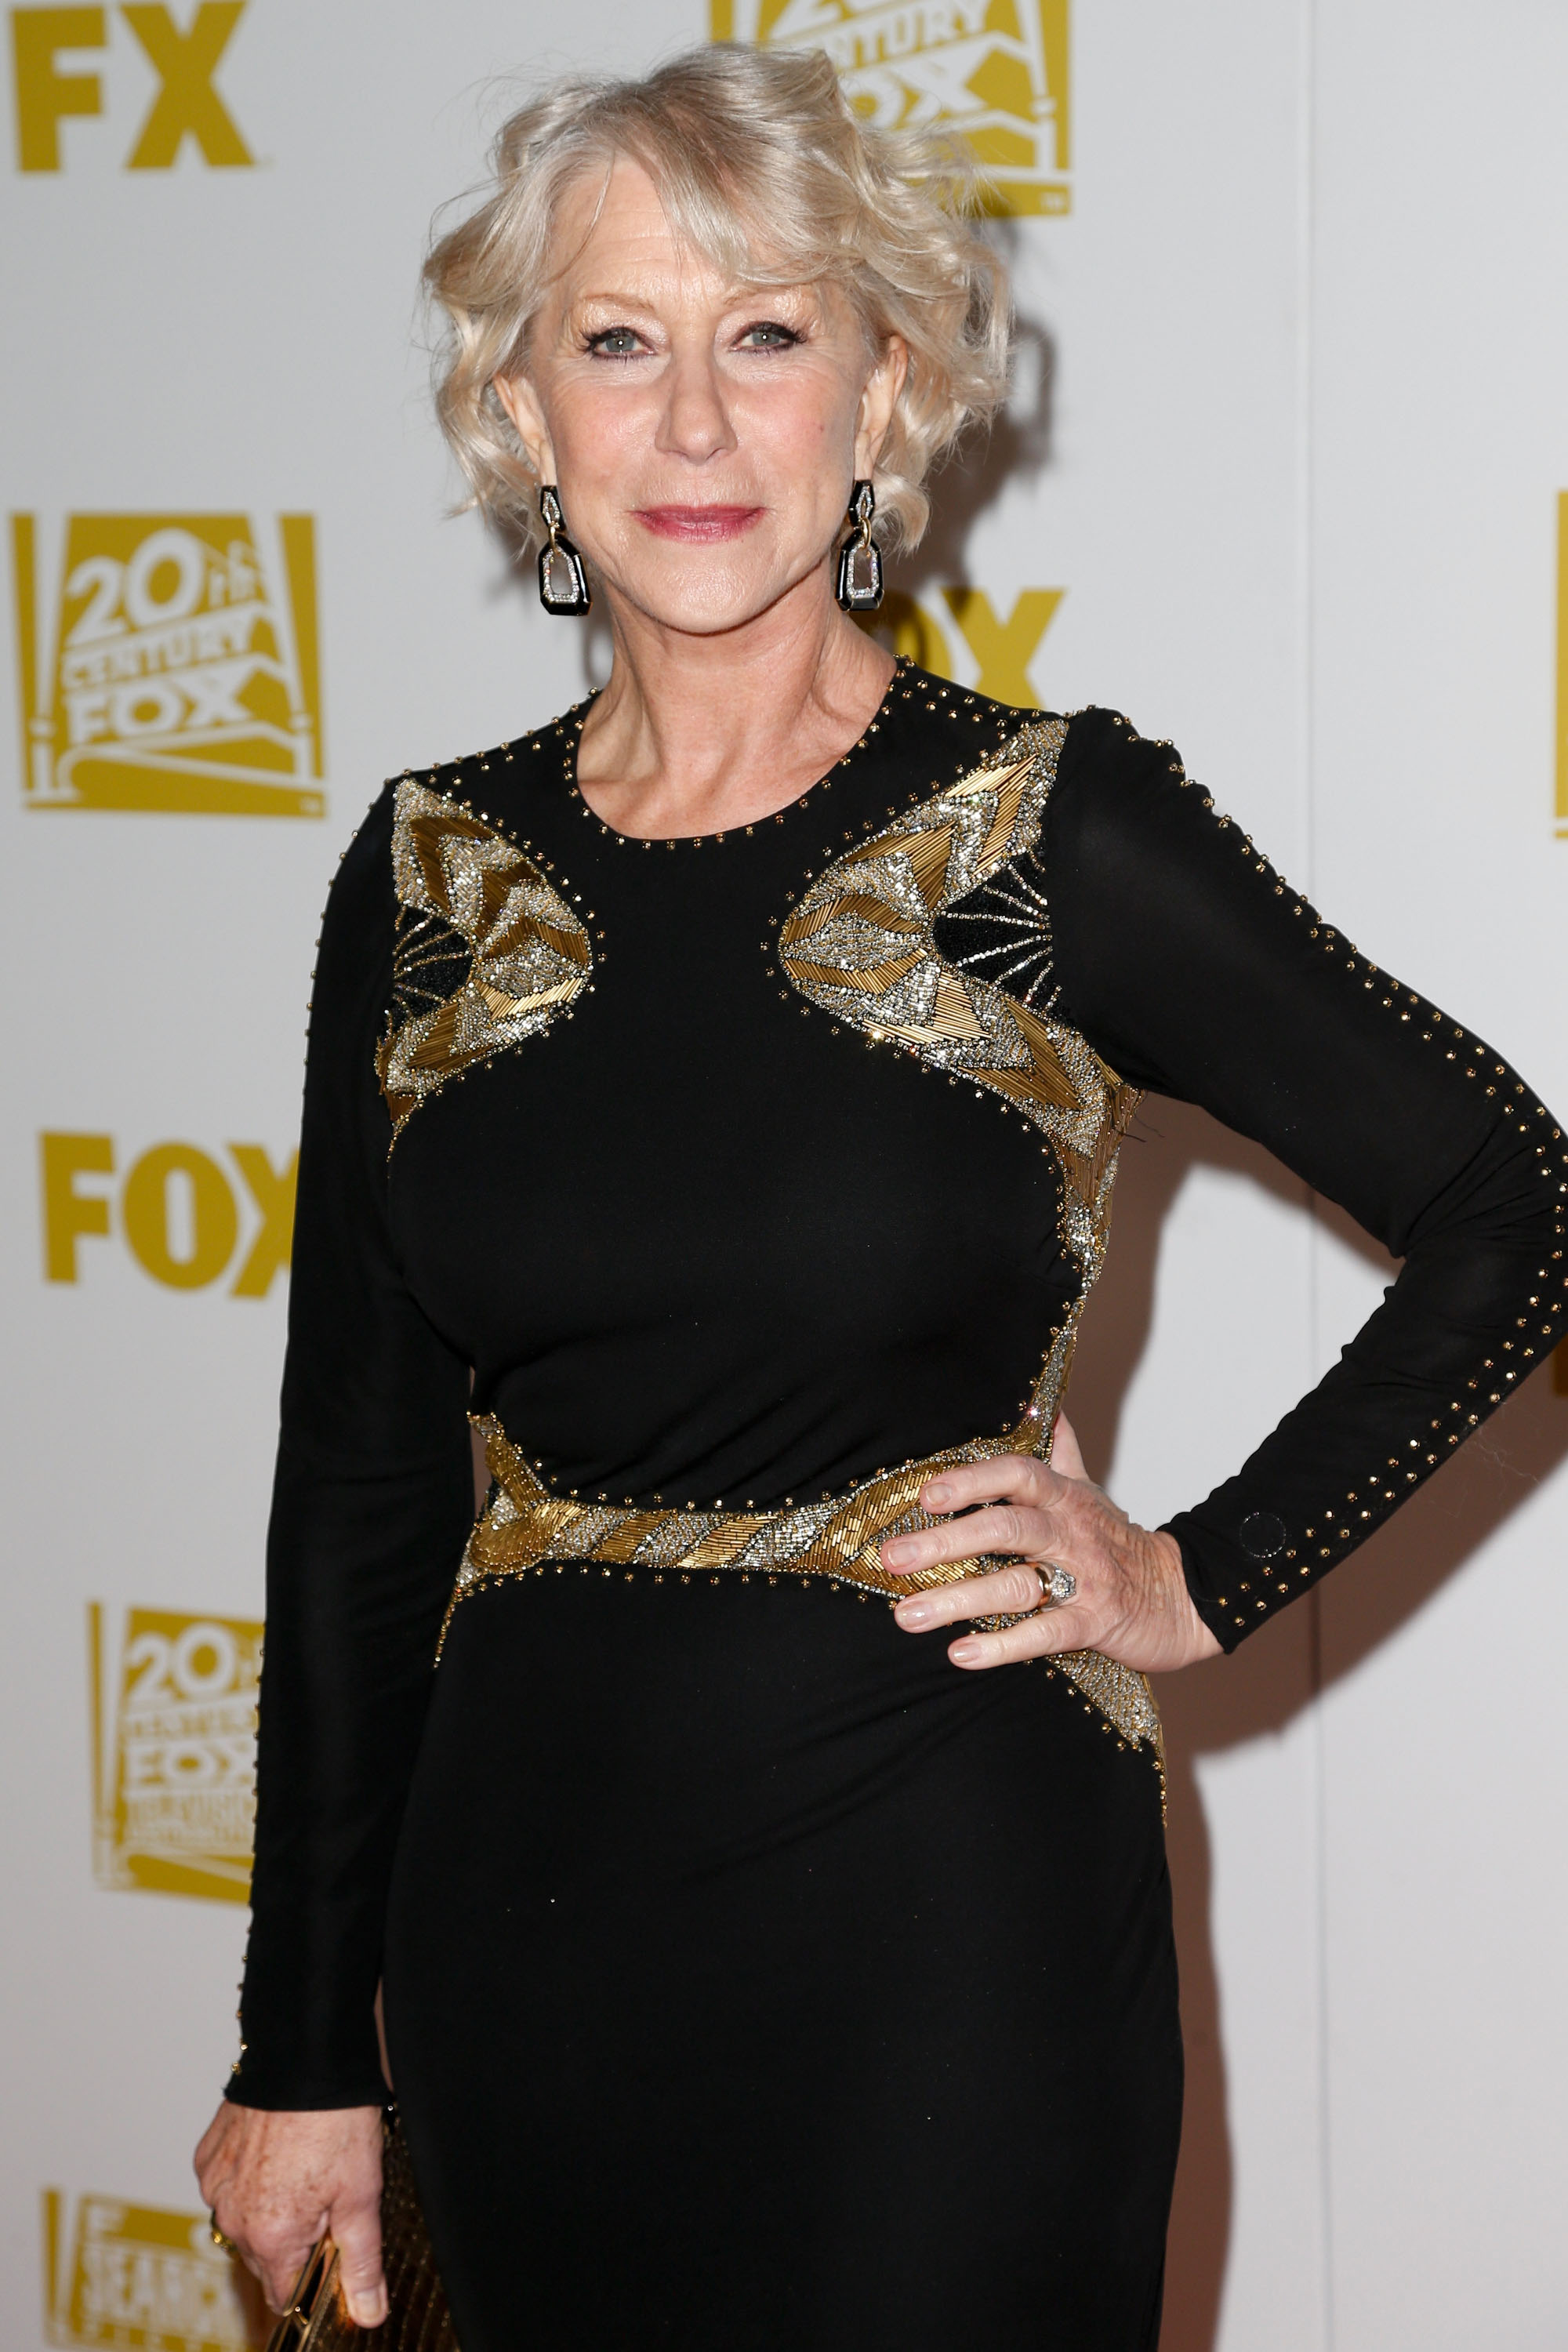 Helen Mirren posed at the Fox bash celebrating the Golden Globes.